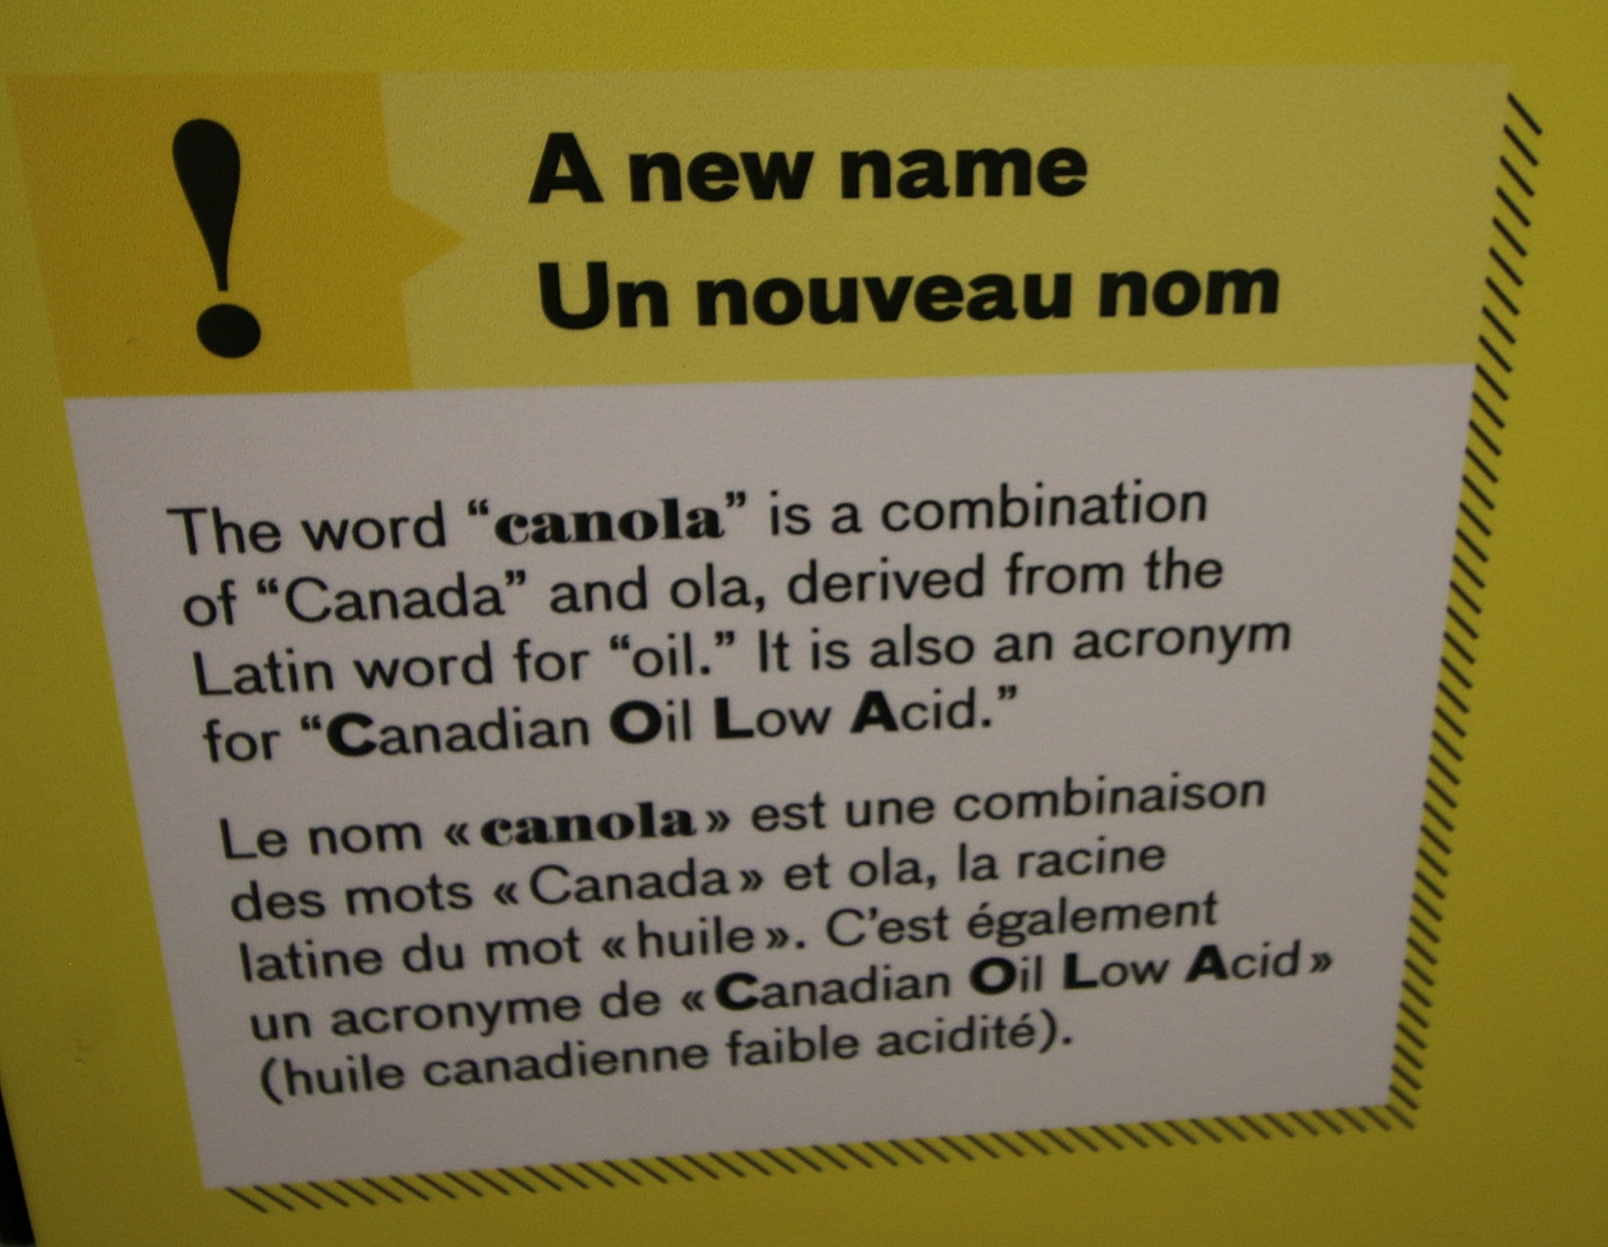 Canada is the world's largest producer and exporter of Canola oil.